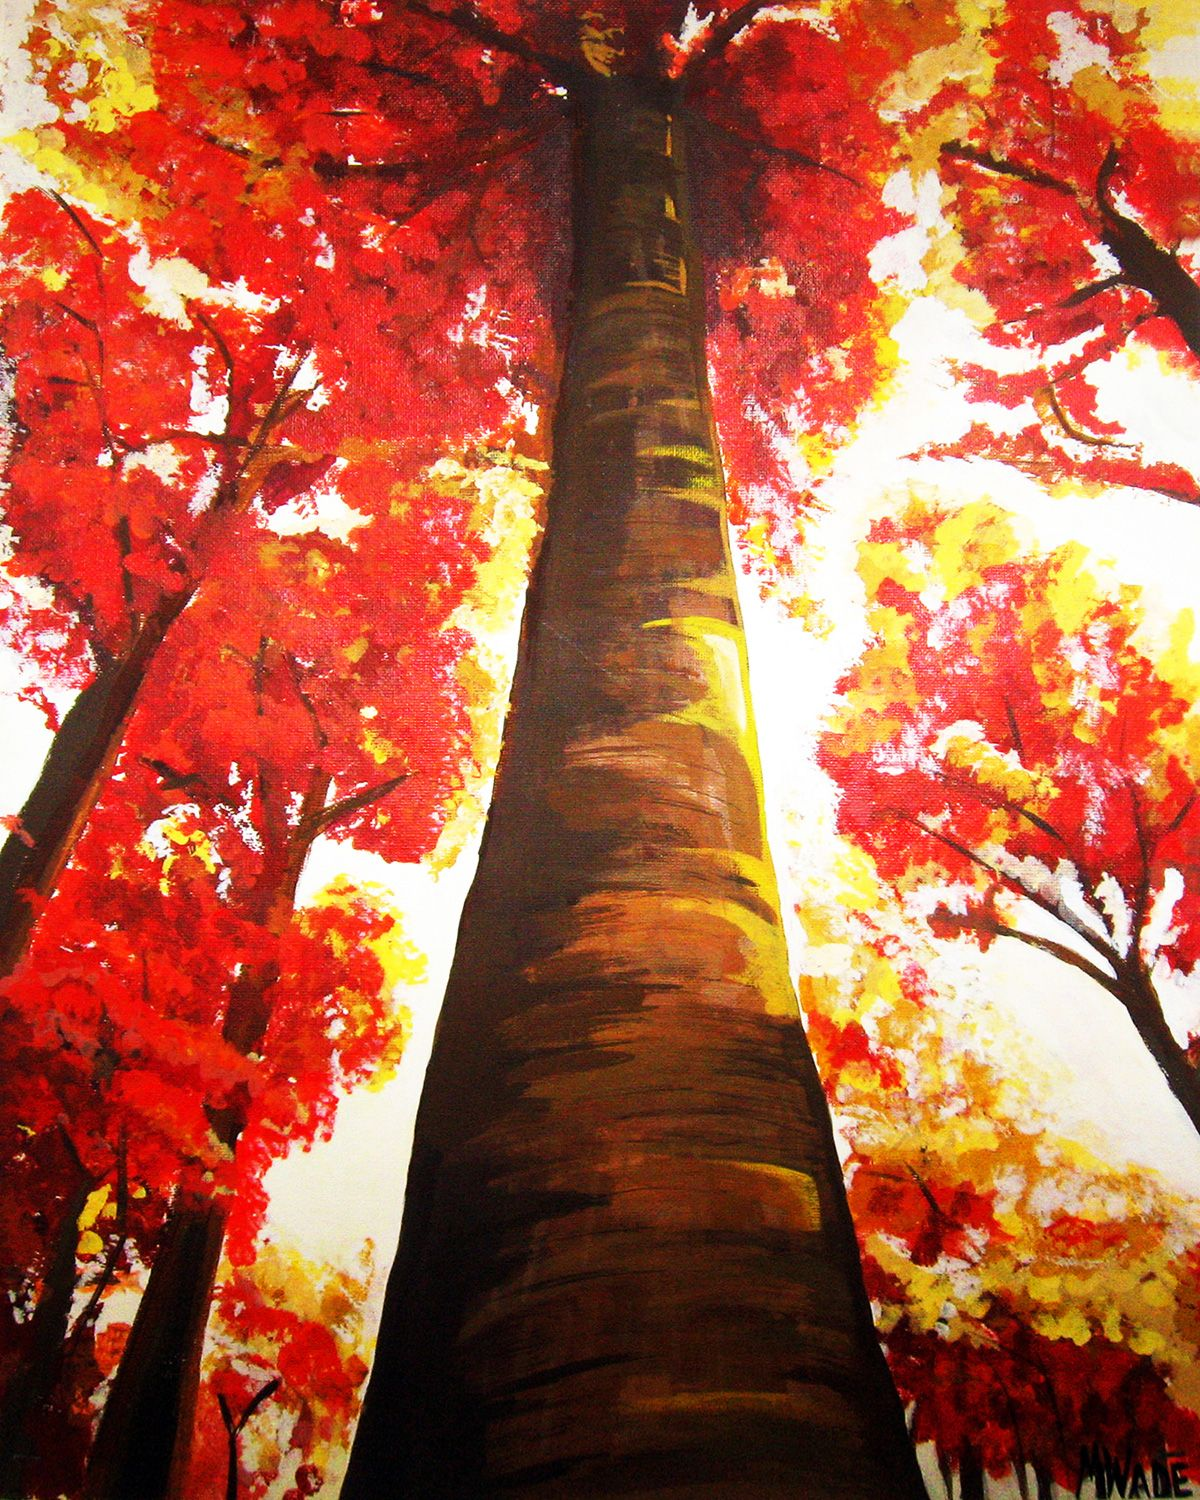 fall morning light 16 20 acrylic on canvas original painting1200 x 15001MBwadecreate.wordpress.com